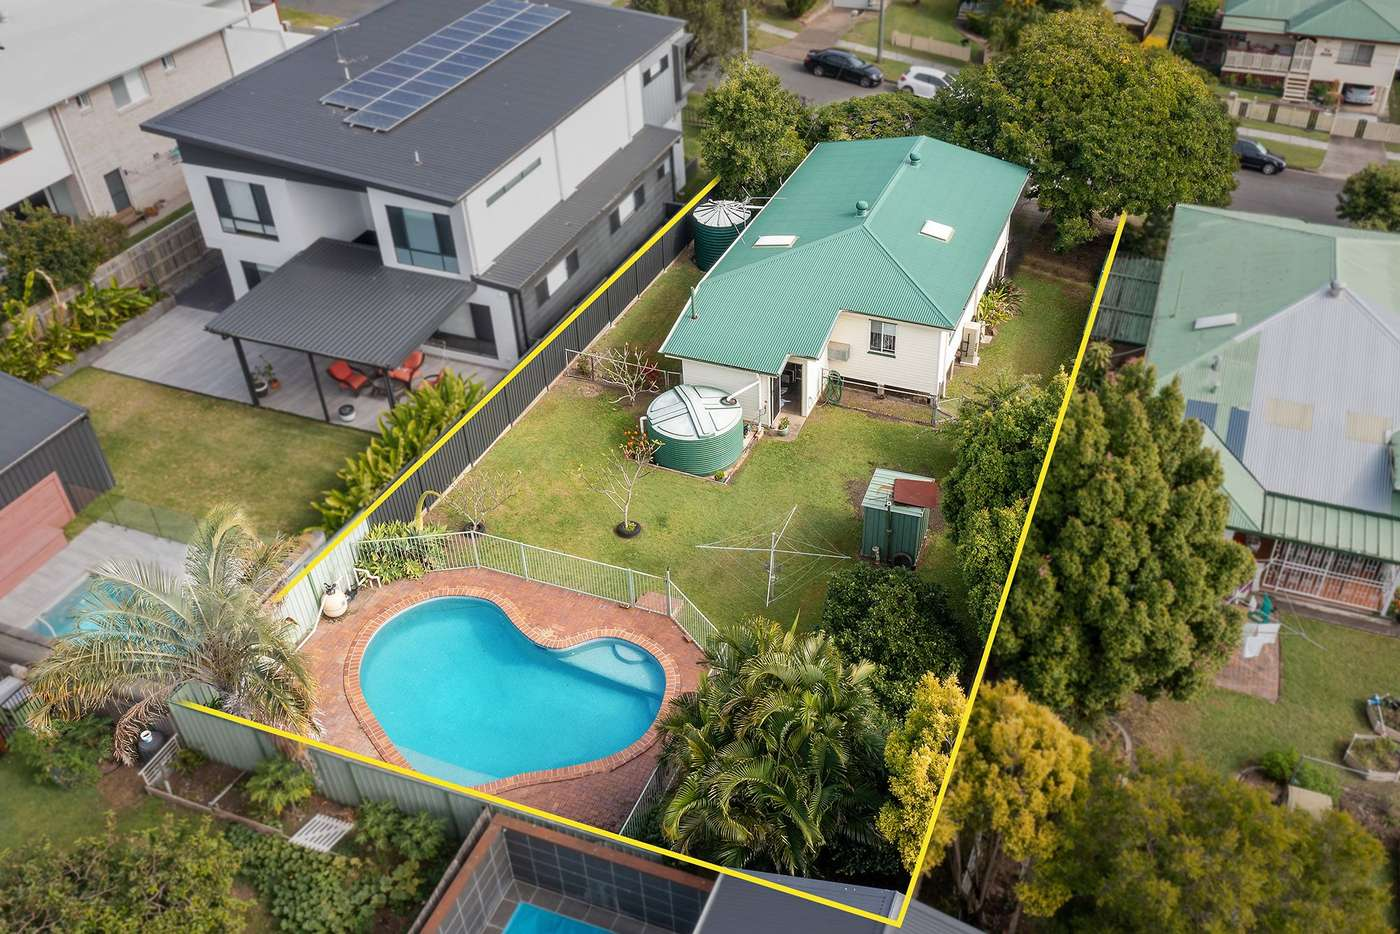 Main view of Homely house listing, 35 Spence Street, Mount Gravatt East QLD 4122